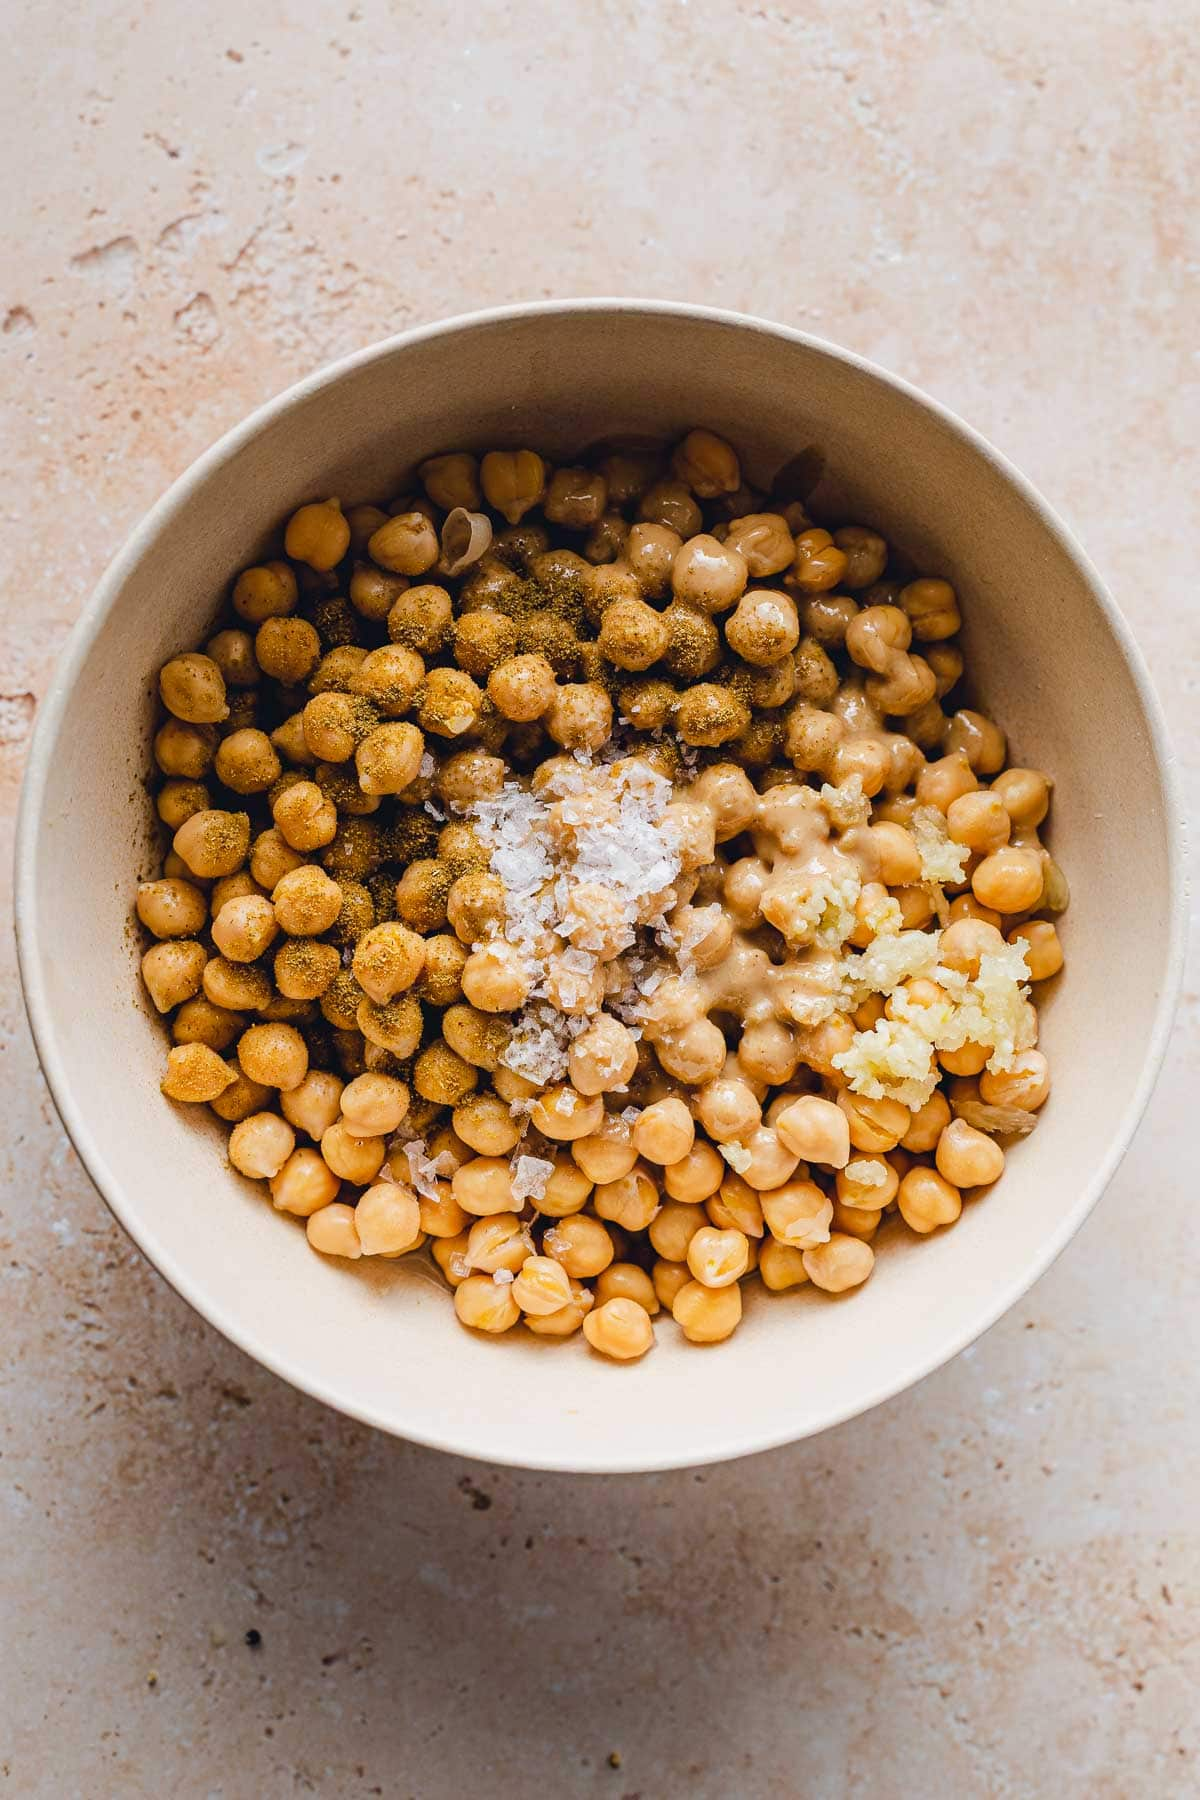 A large bowl with chickpeas, salt, minced garlic and other hummus ingredients prior to blending